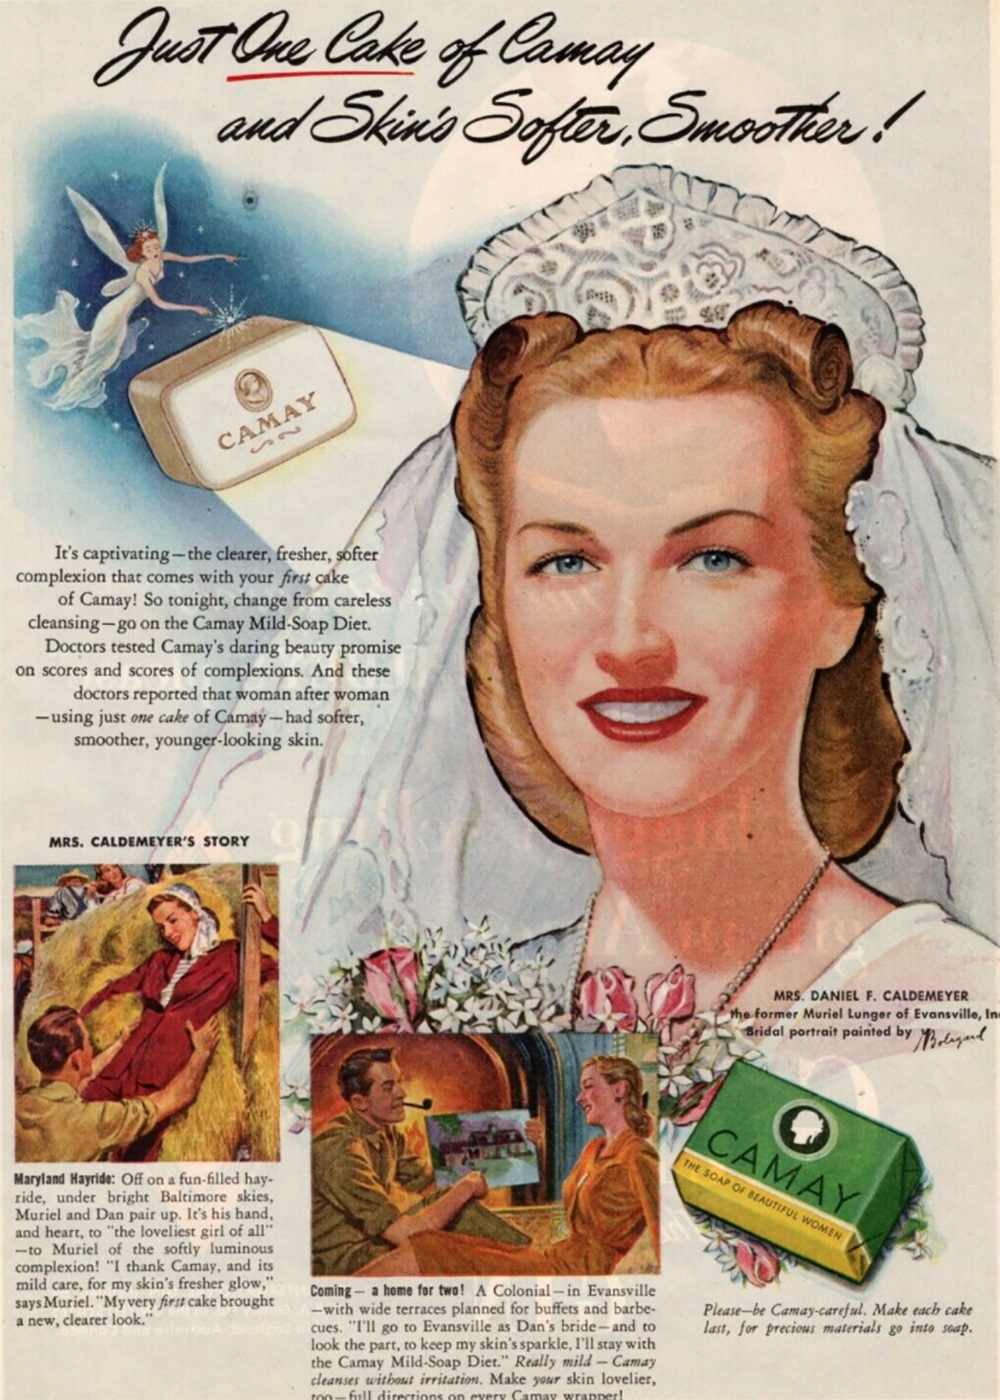 Camay soap ad from the 1940s